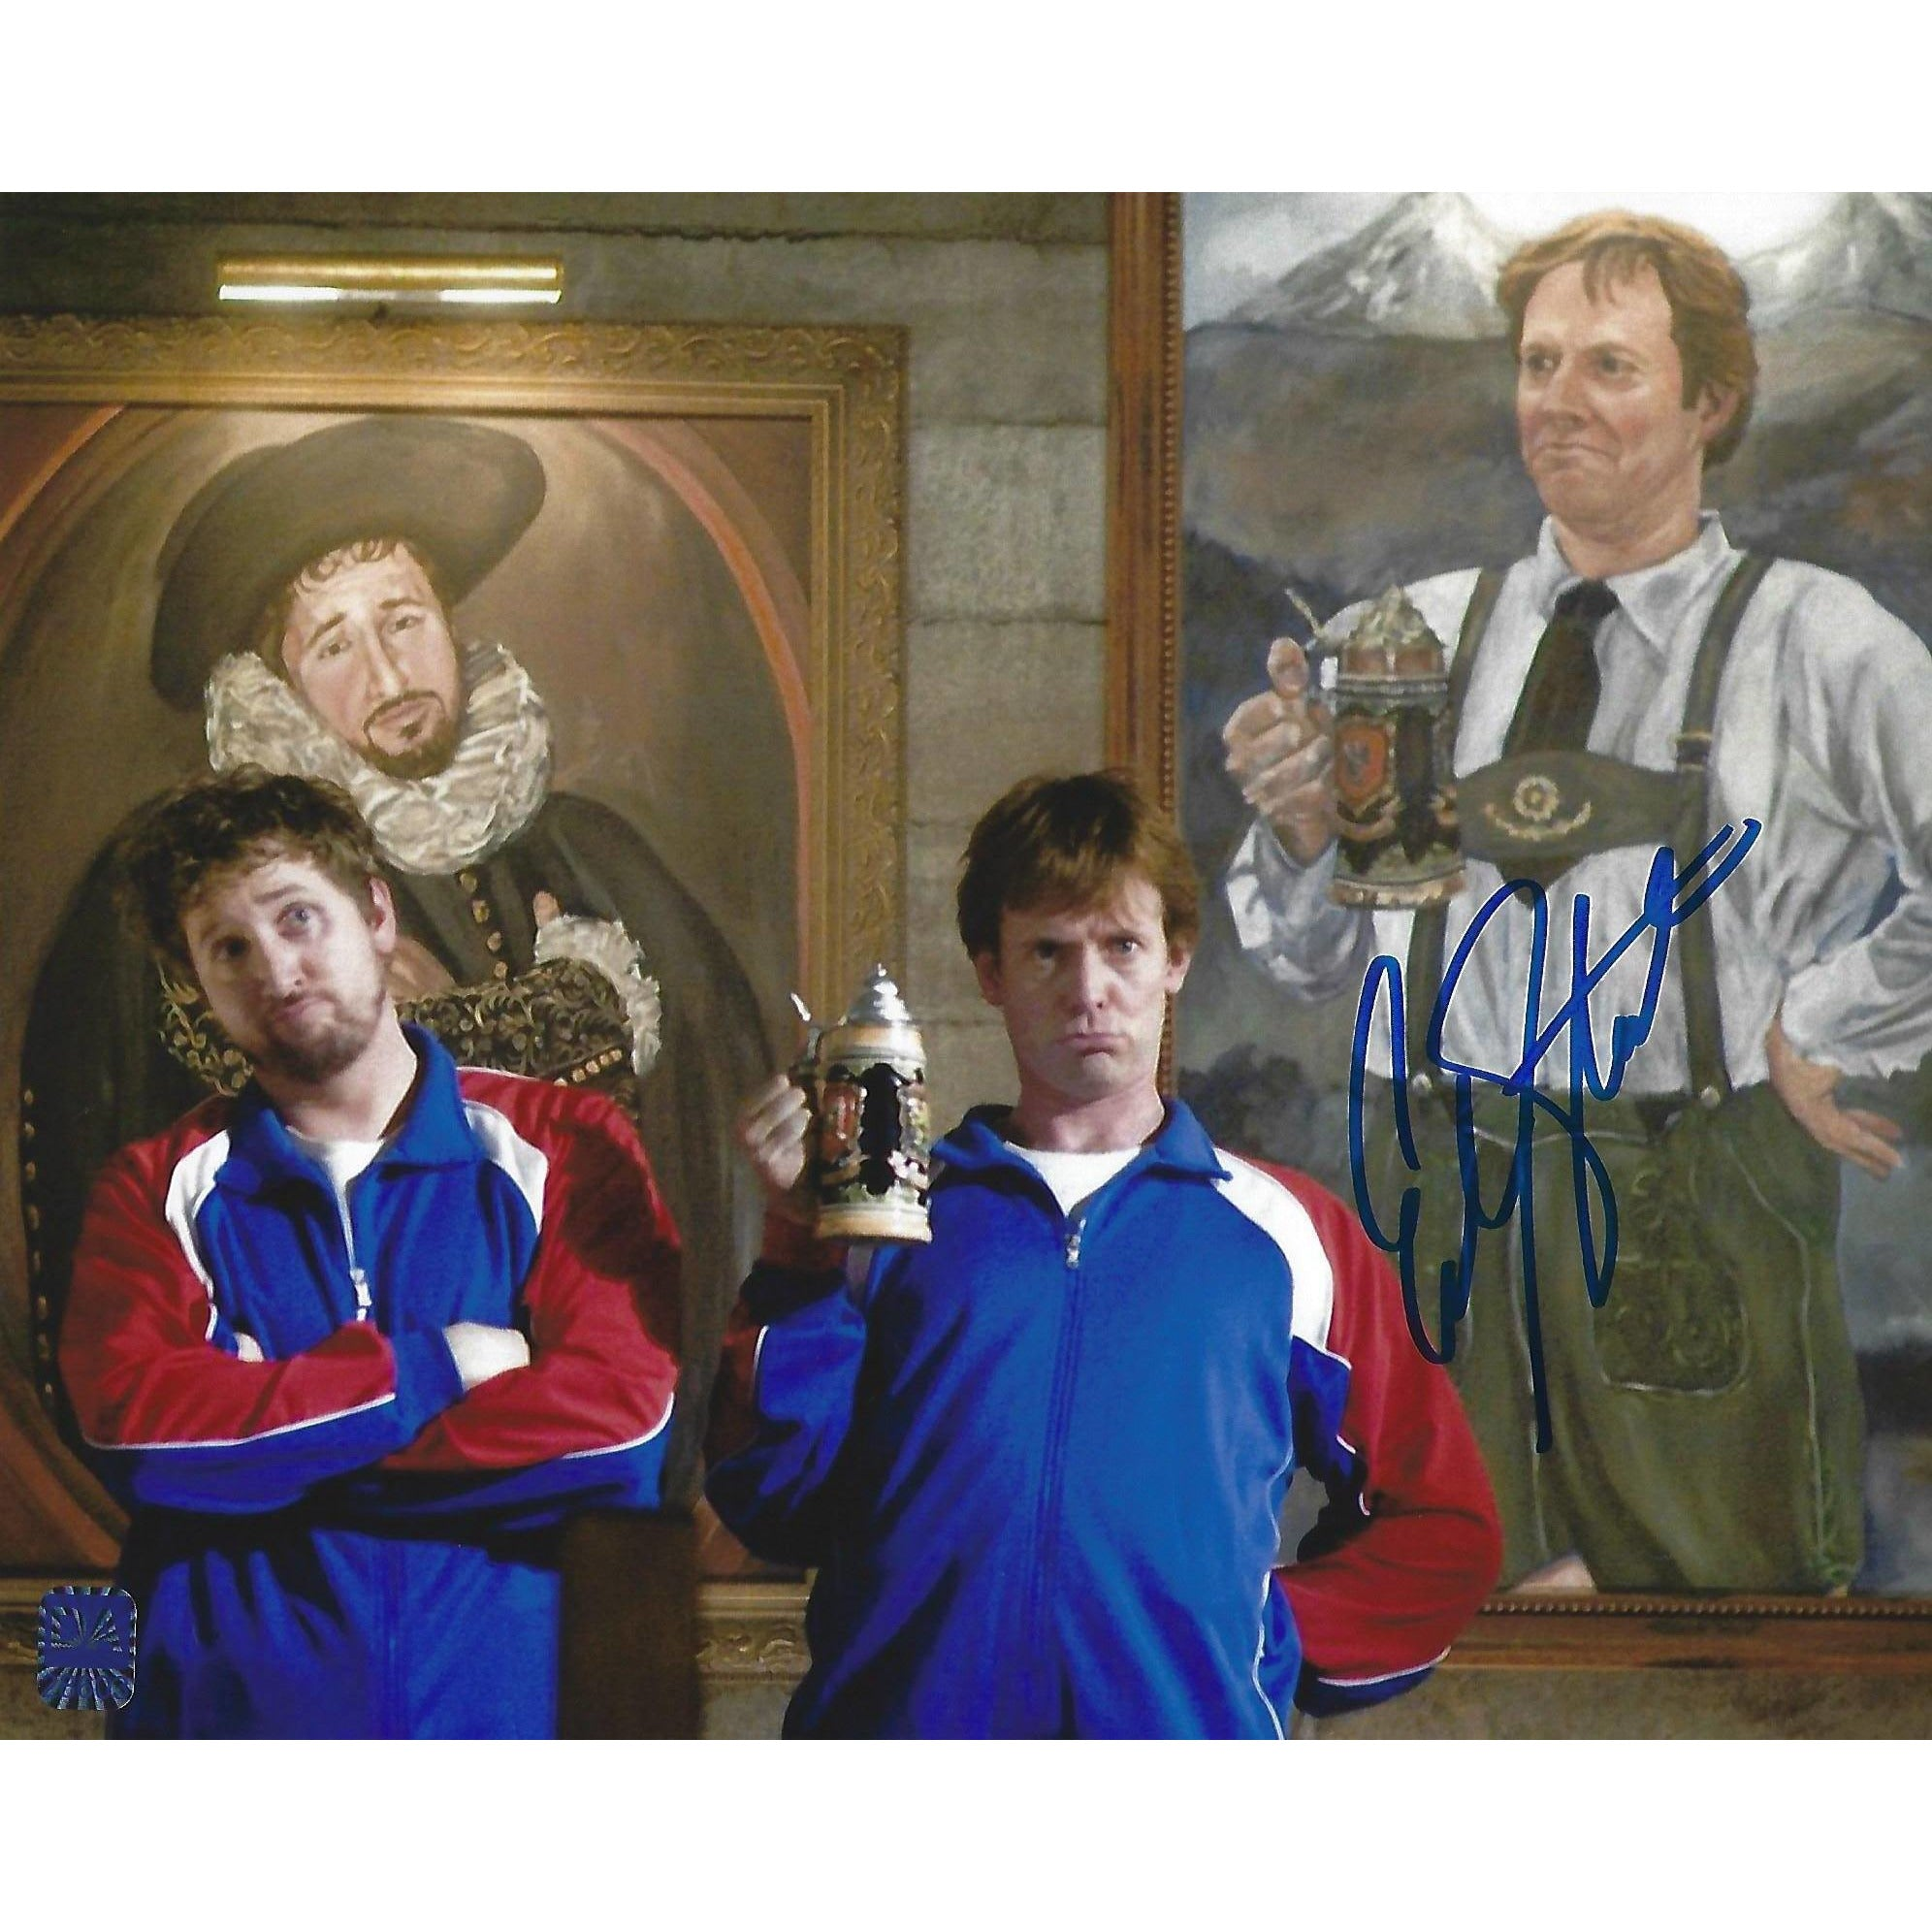 Erik Stolhanske Autographed 8x10 Picture with COA Beerfest Super Troopers